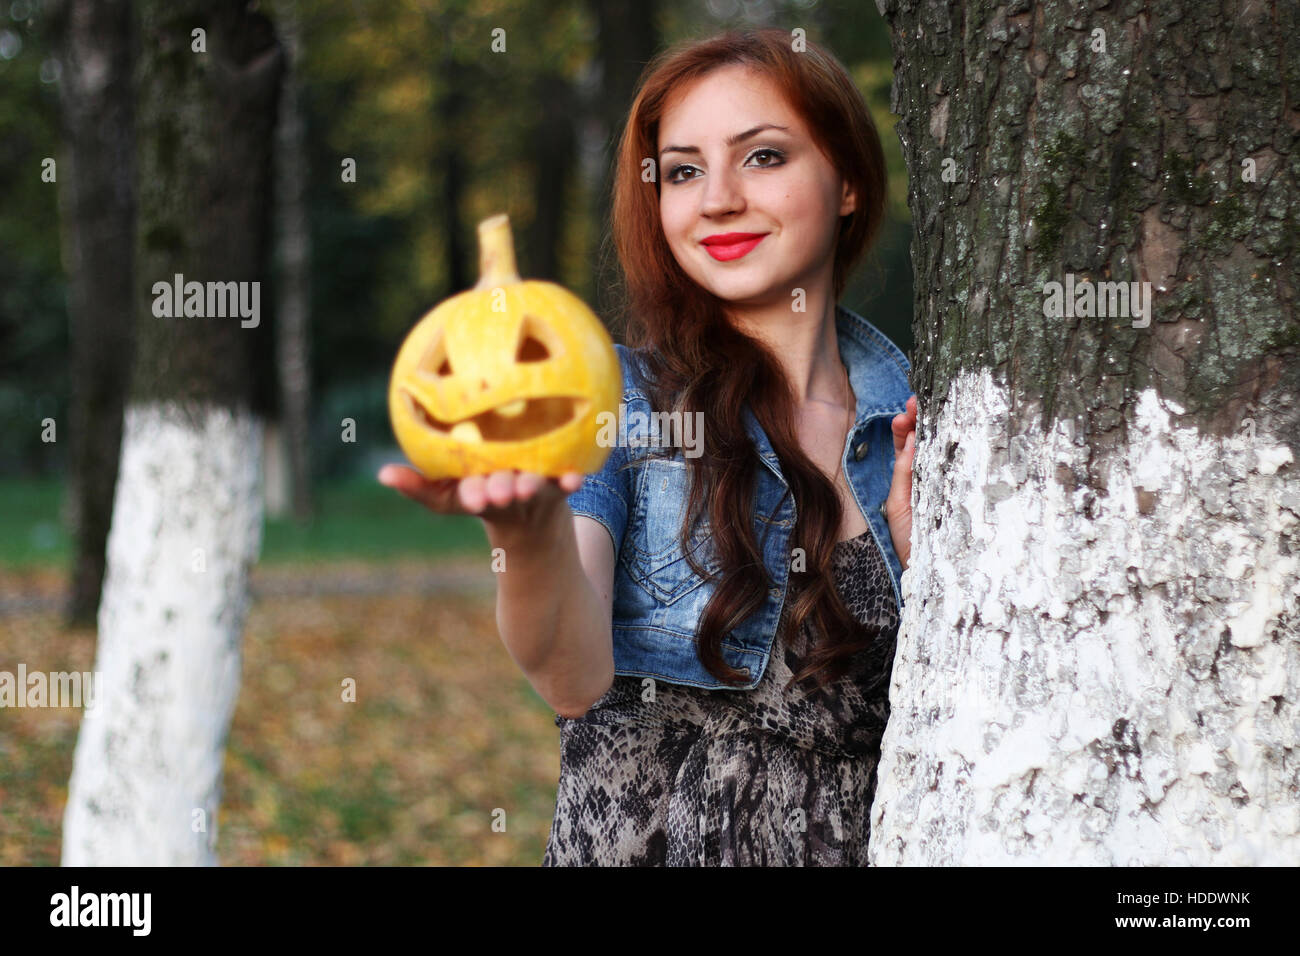 red haired girl halloween pumpkin stock photos & red haired girl